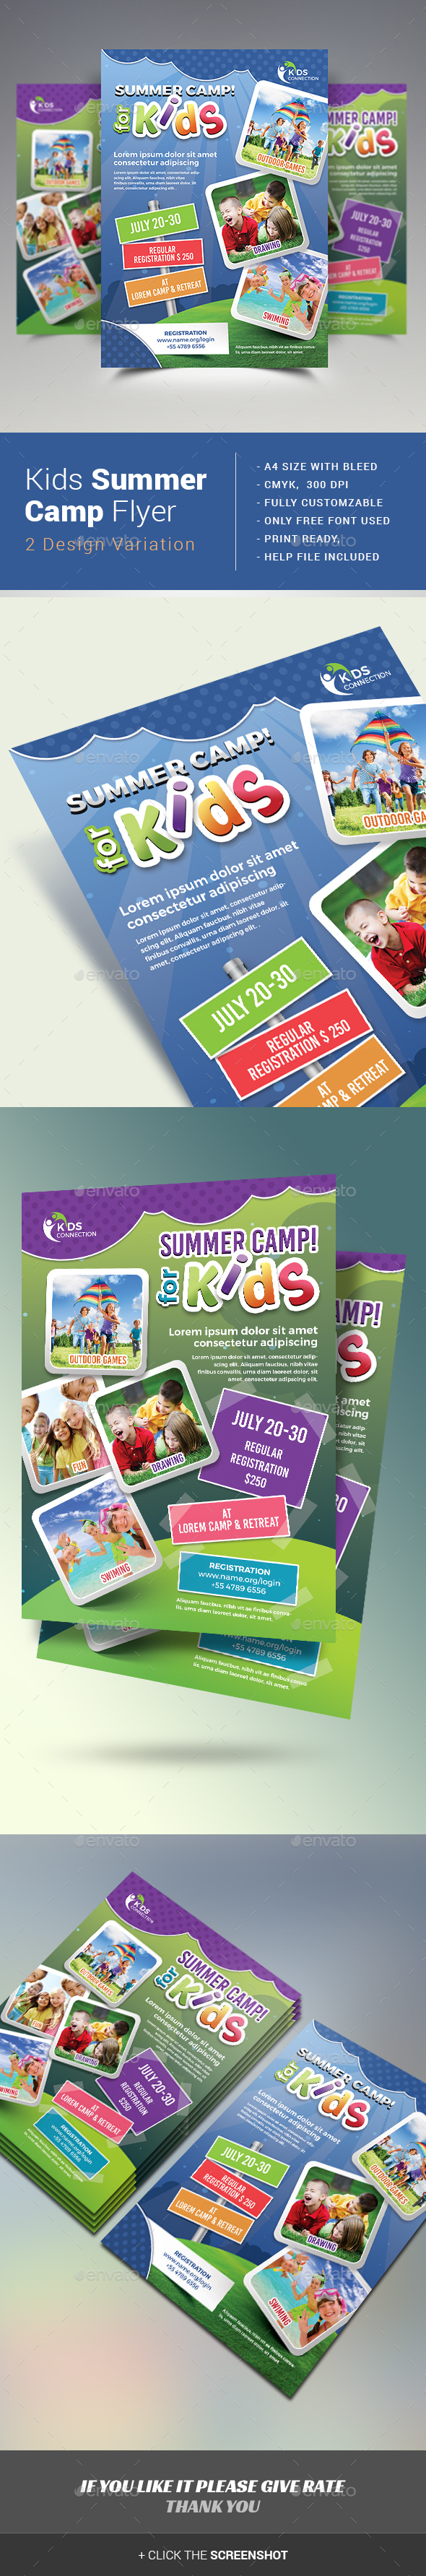 Kids Summer Camp Flyer  Download Heres And Flyer Template